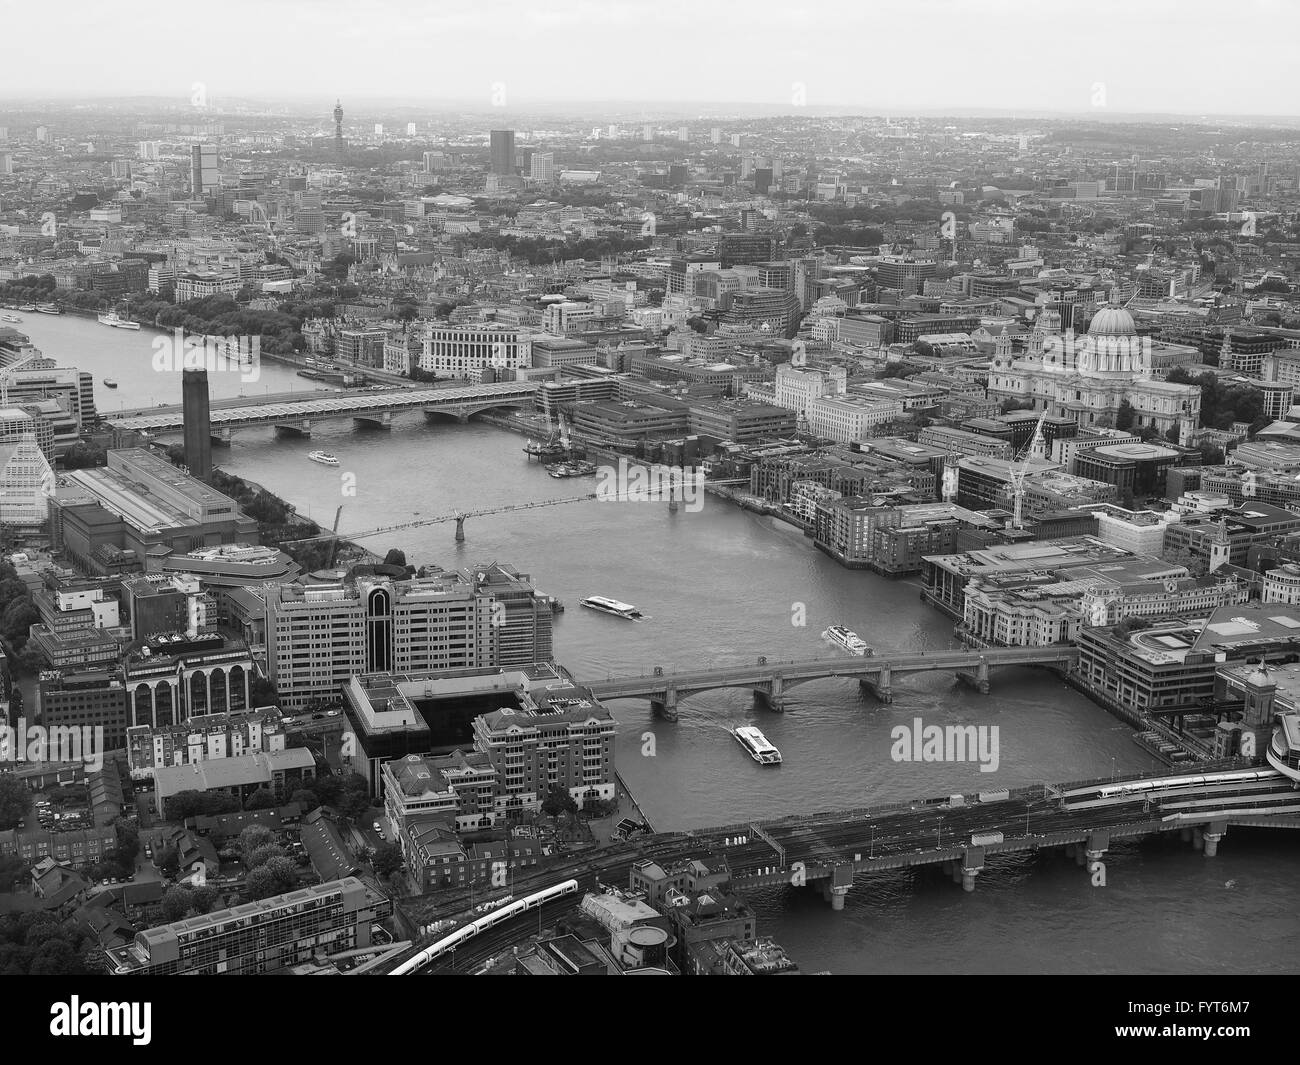 Black and white Aerial view of London - Stock Image